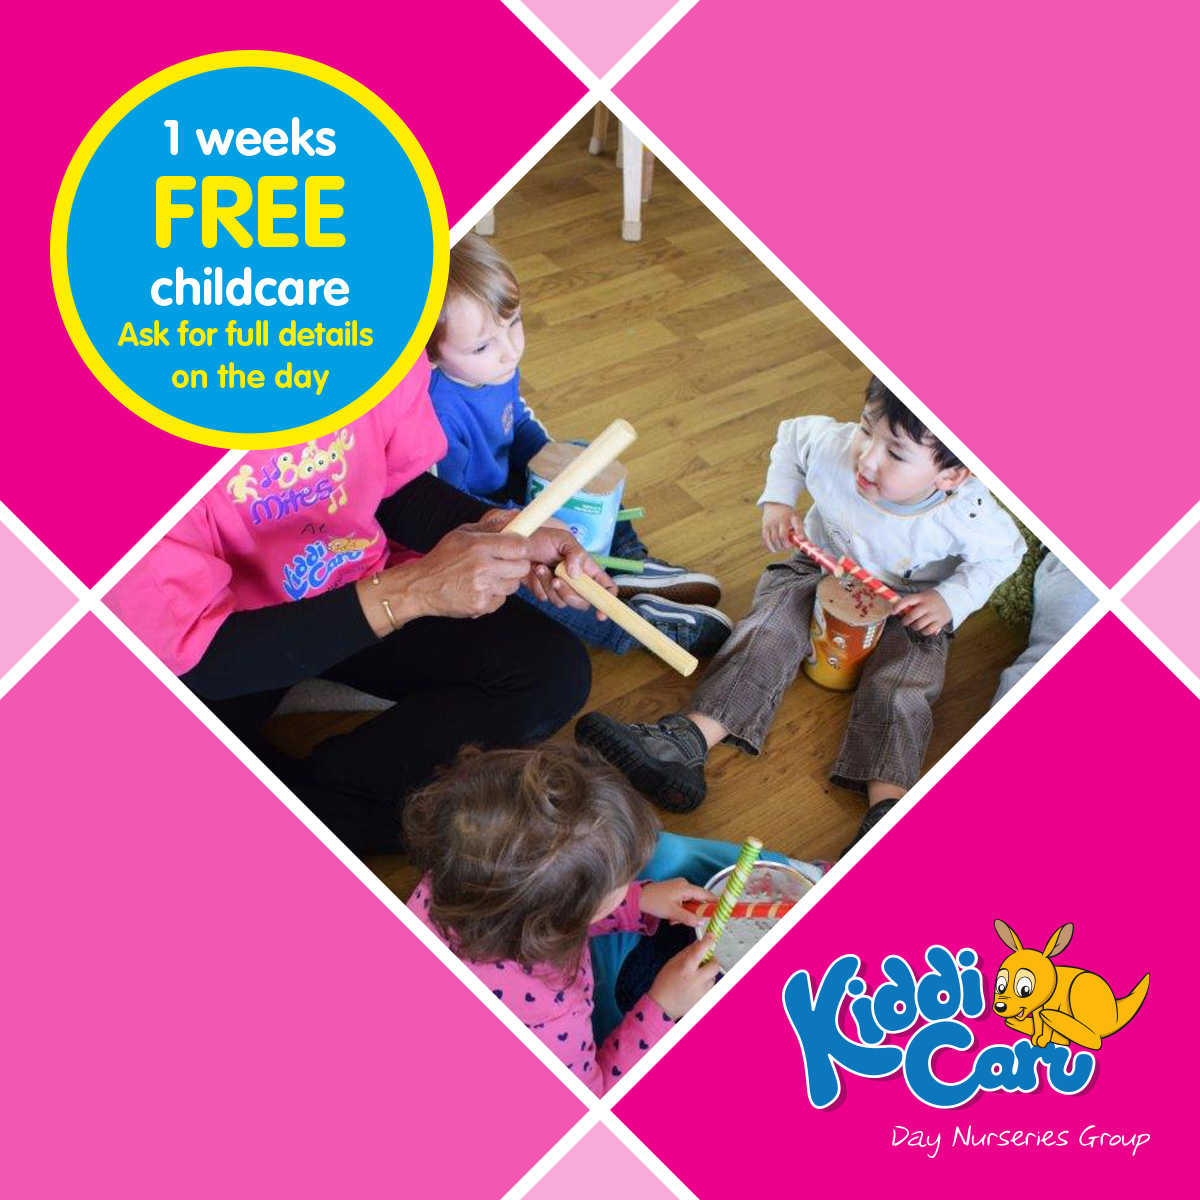 Childcare Open Event at Kiddi Caru Day Nursery and Preschool in Colchester